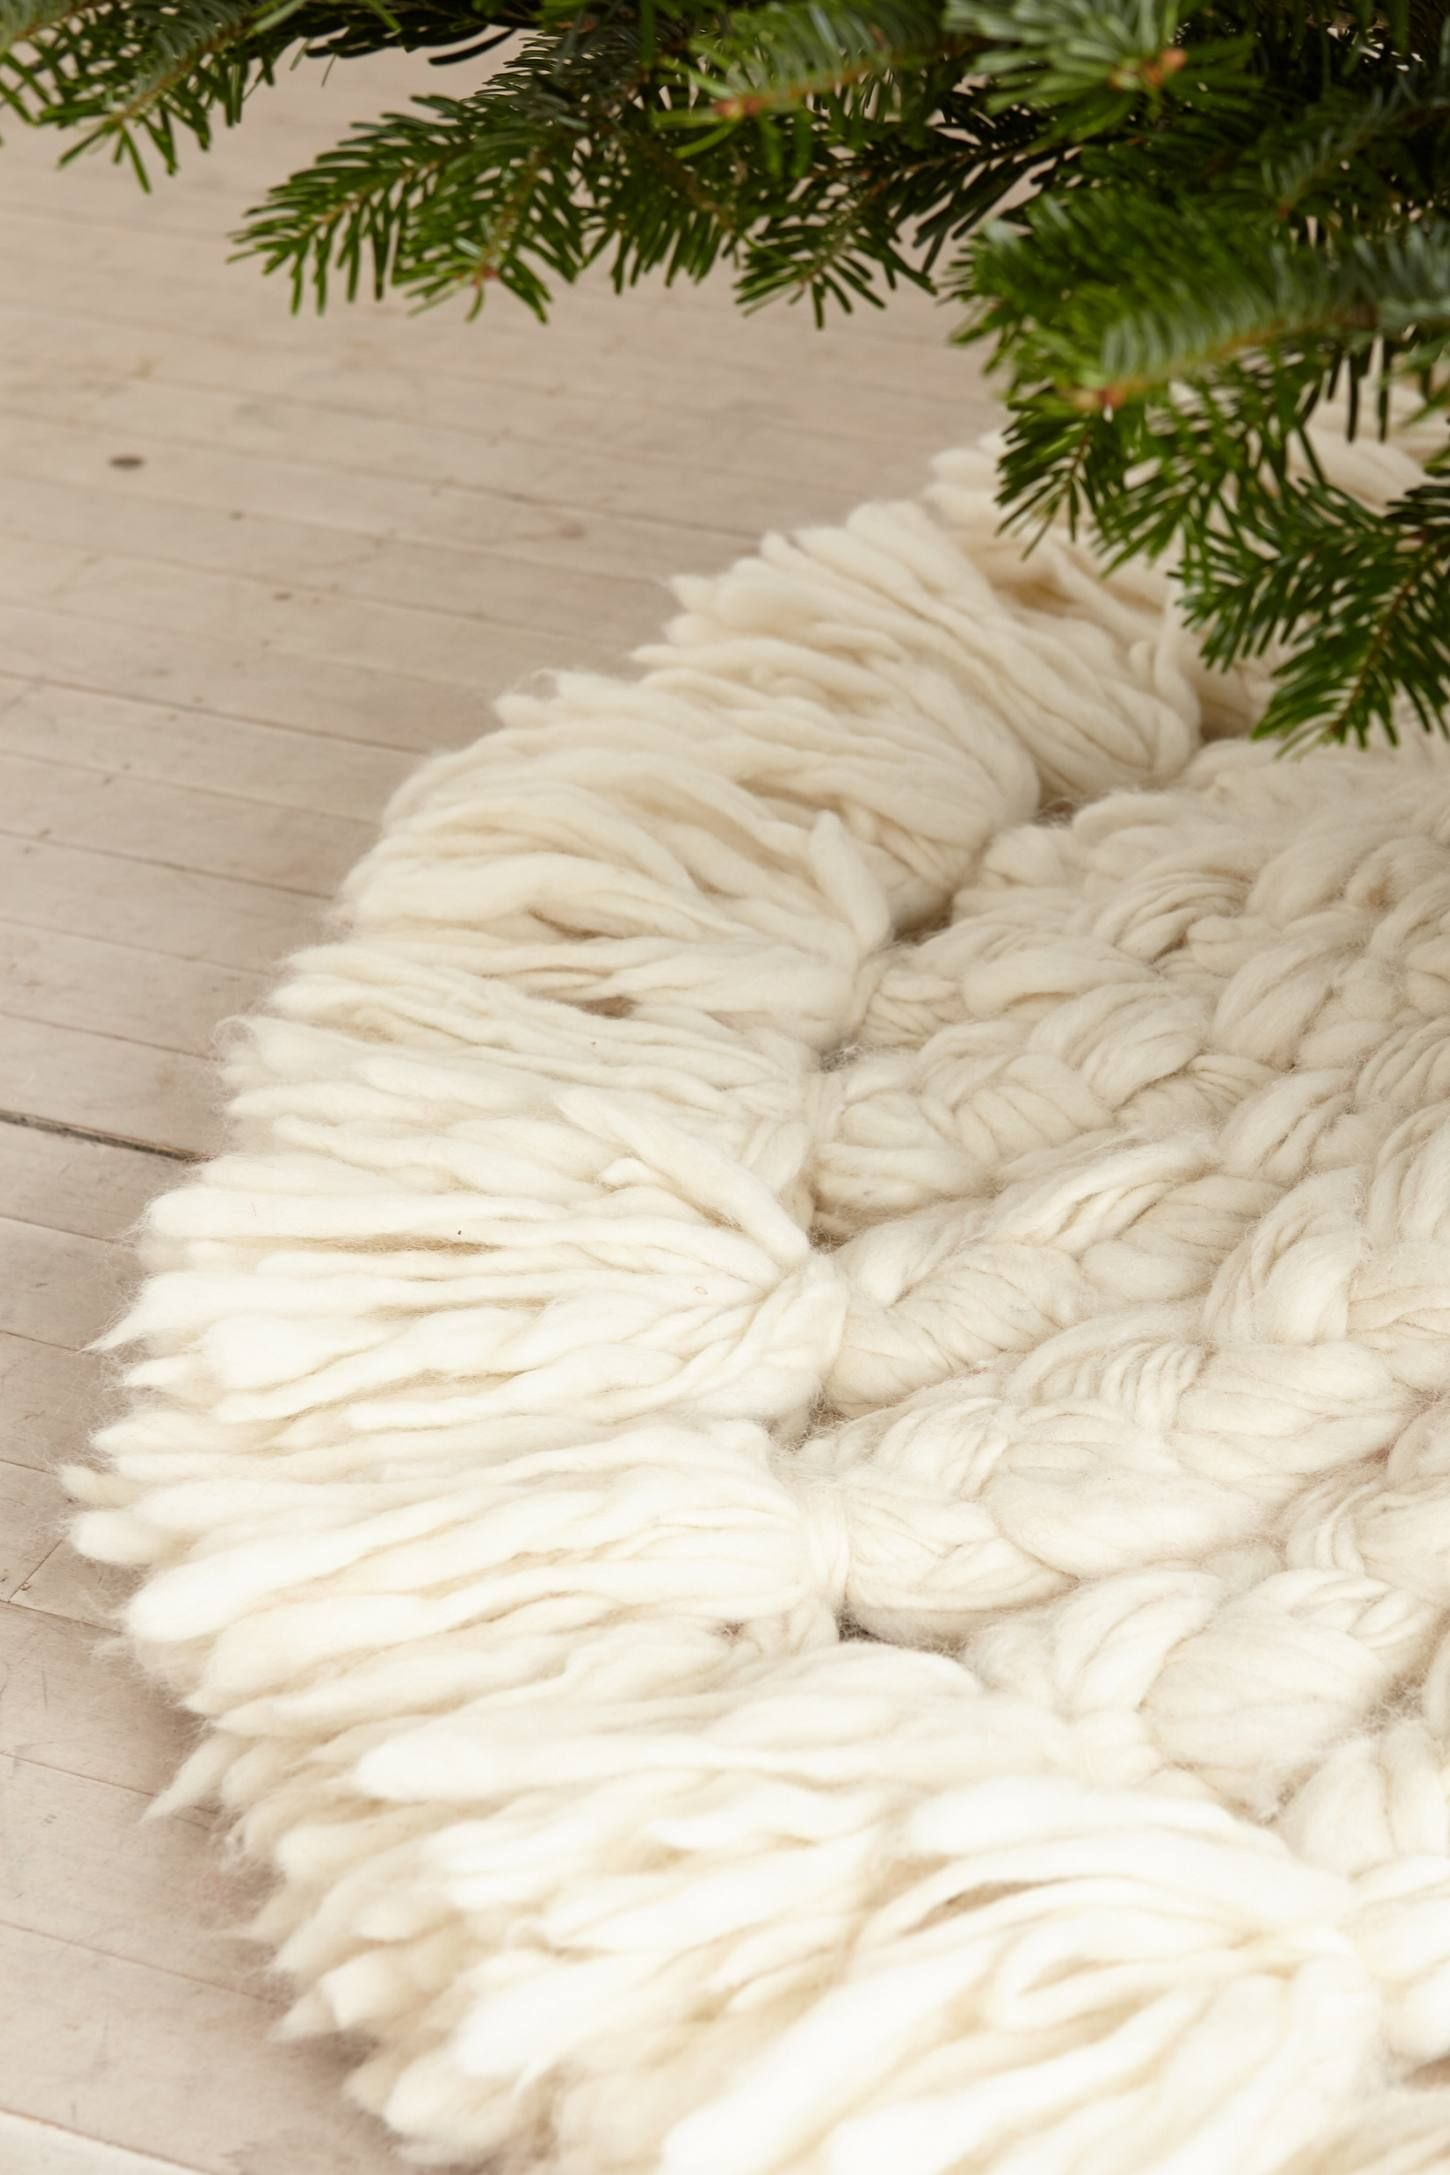 Snow angel tree skirt anthropologient afford but snow angel tree skirt anthropologien diy christmas bankloansurffo Gallery